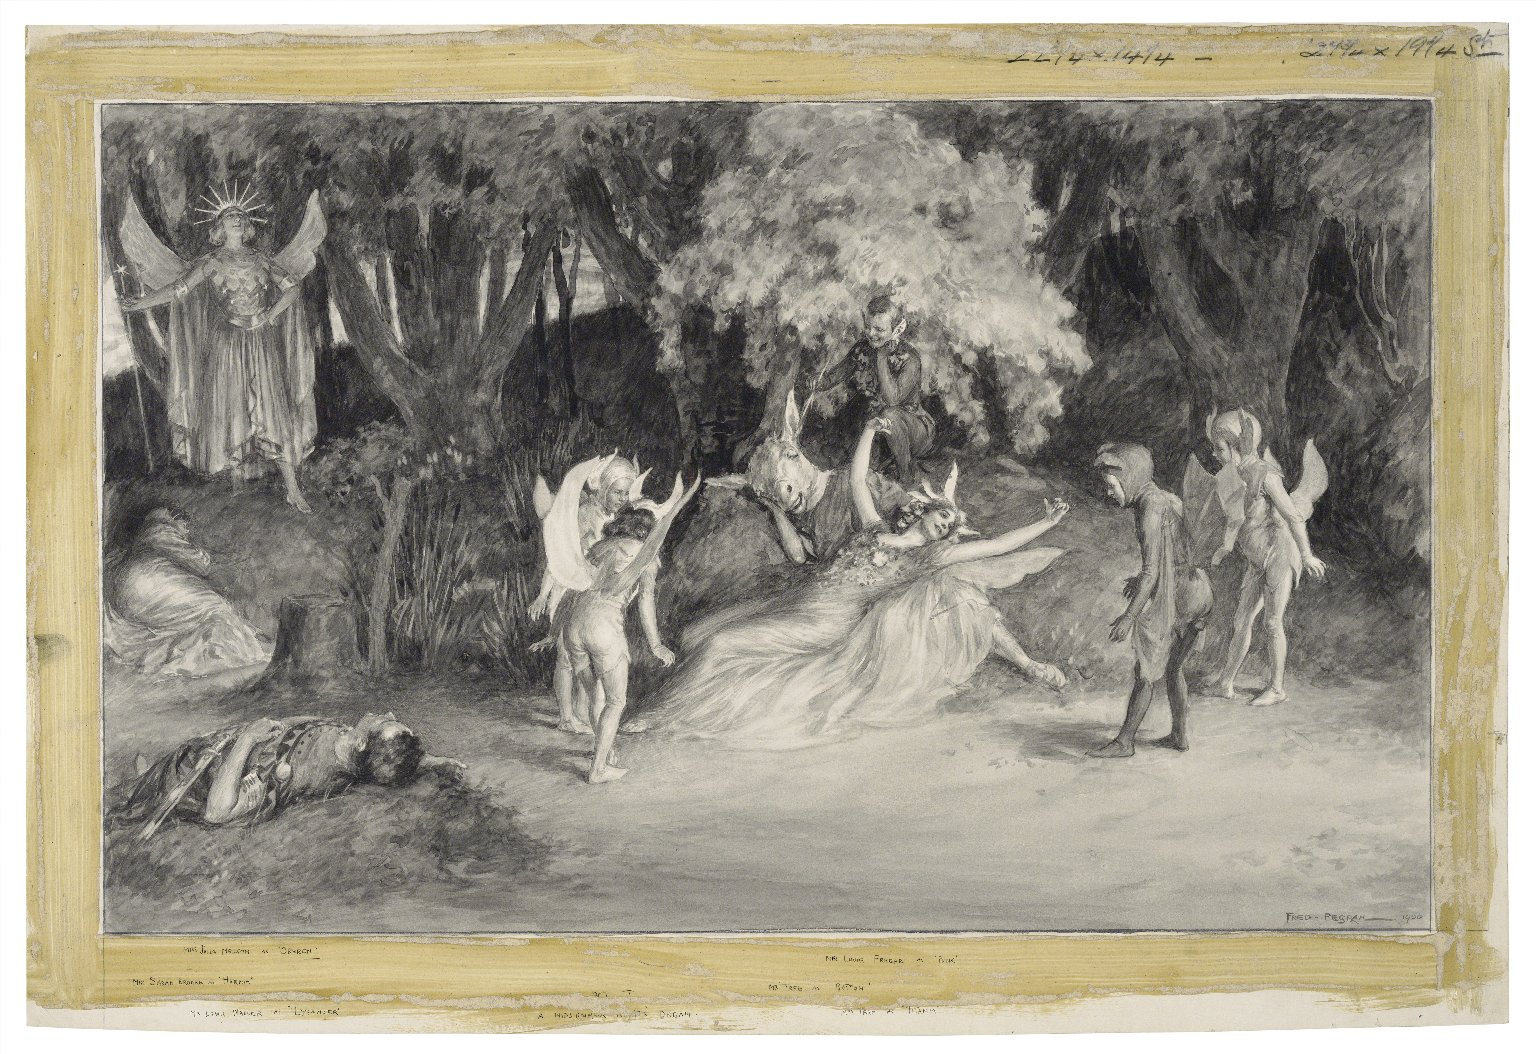 Scenes from A midsummer night's dream at Her Majesty's Theatre [graphic] / Fred Pegram.